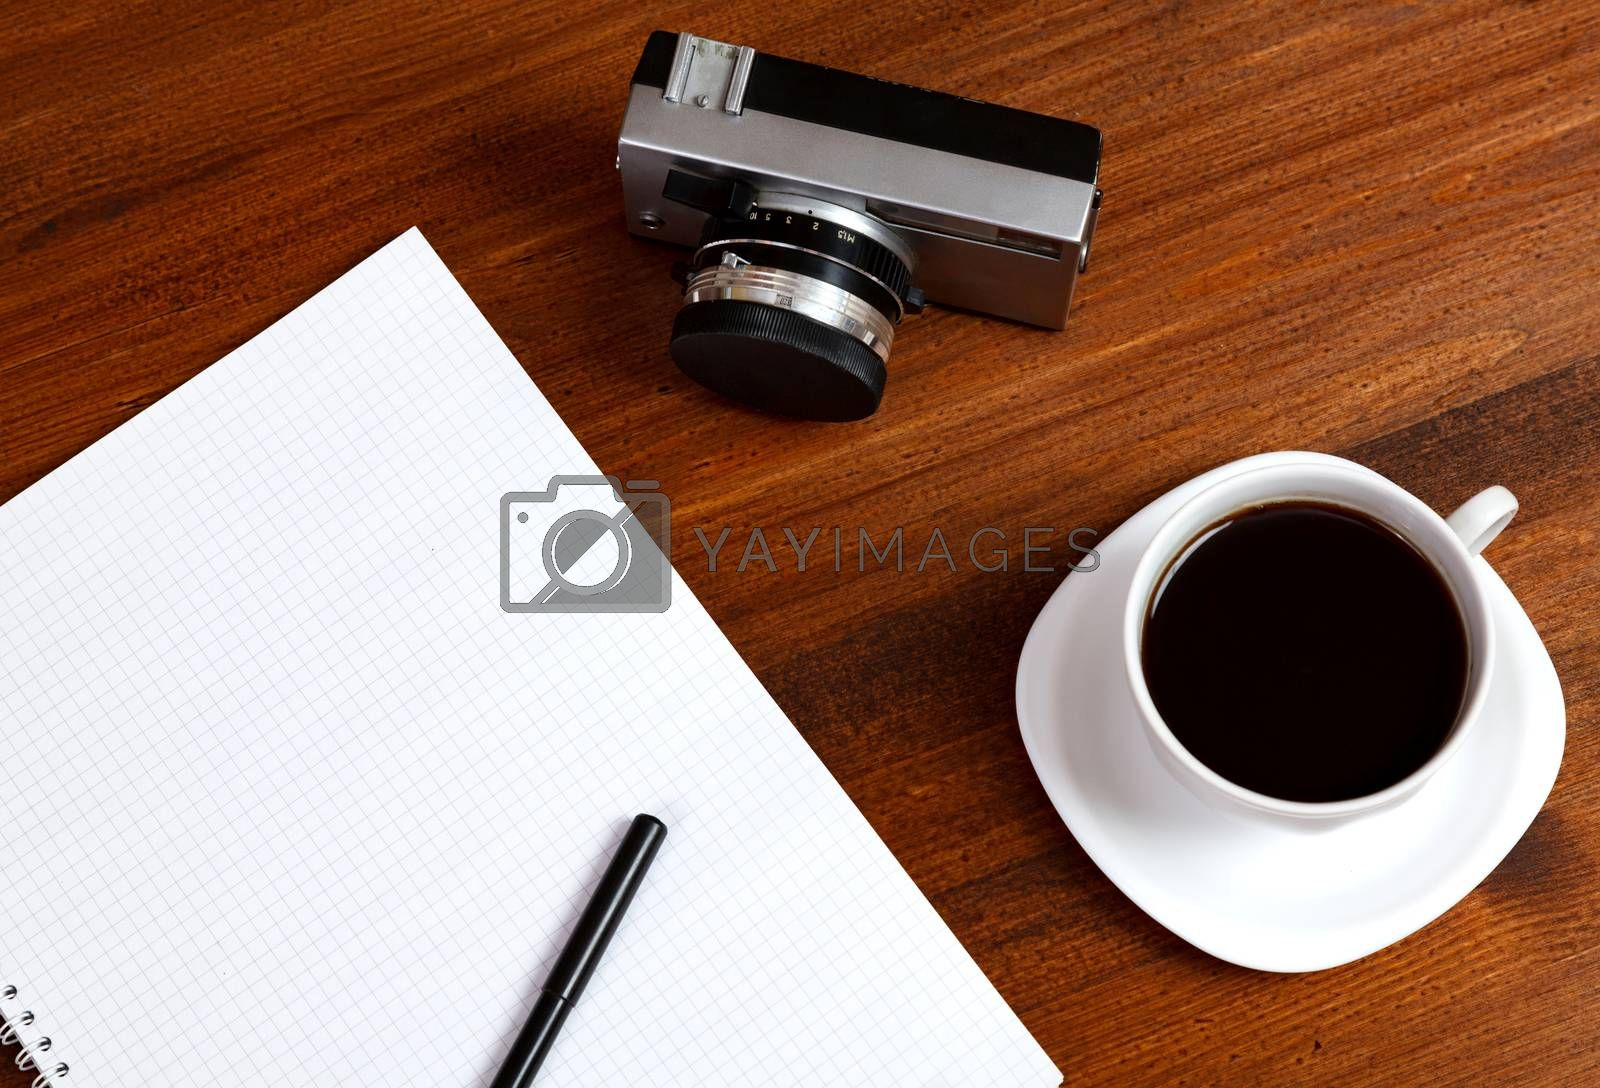 Retro film photo camera, cup of coffee and notebook with pencil on brown table. Top view.